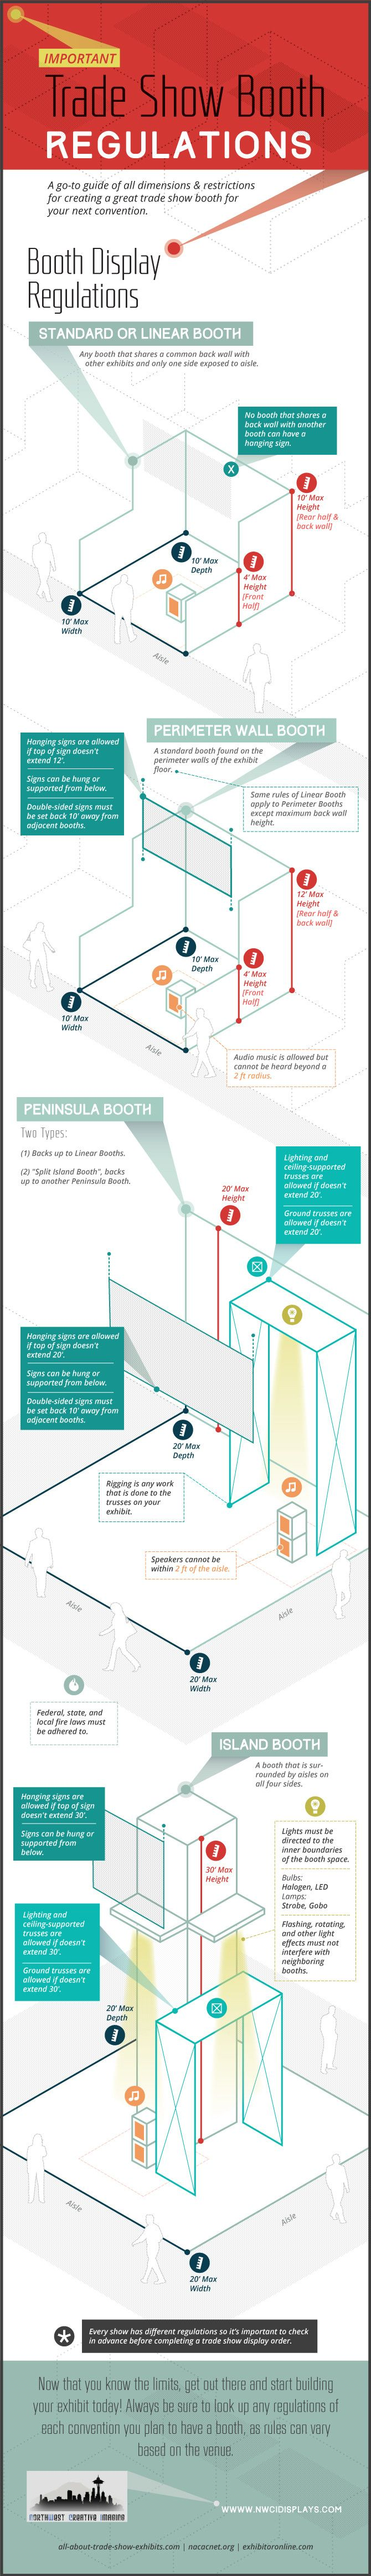 Trade Show Booth Regulations #infographic #TradeShow #Business